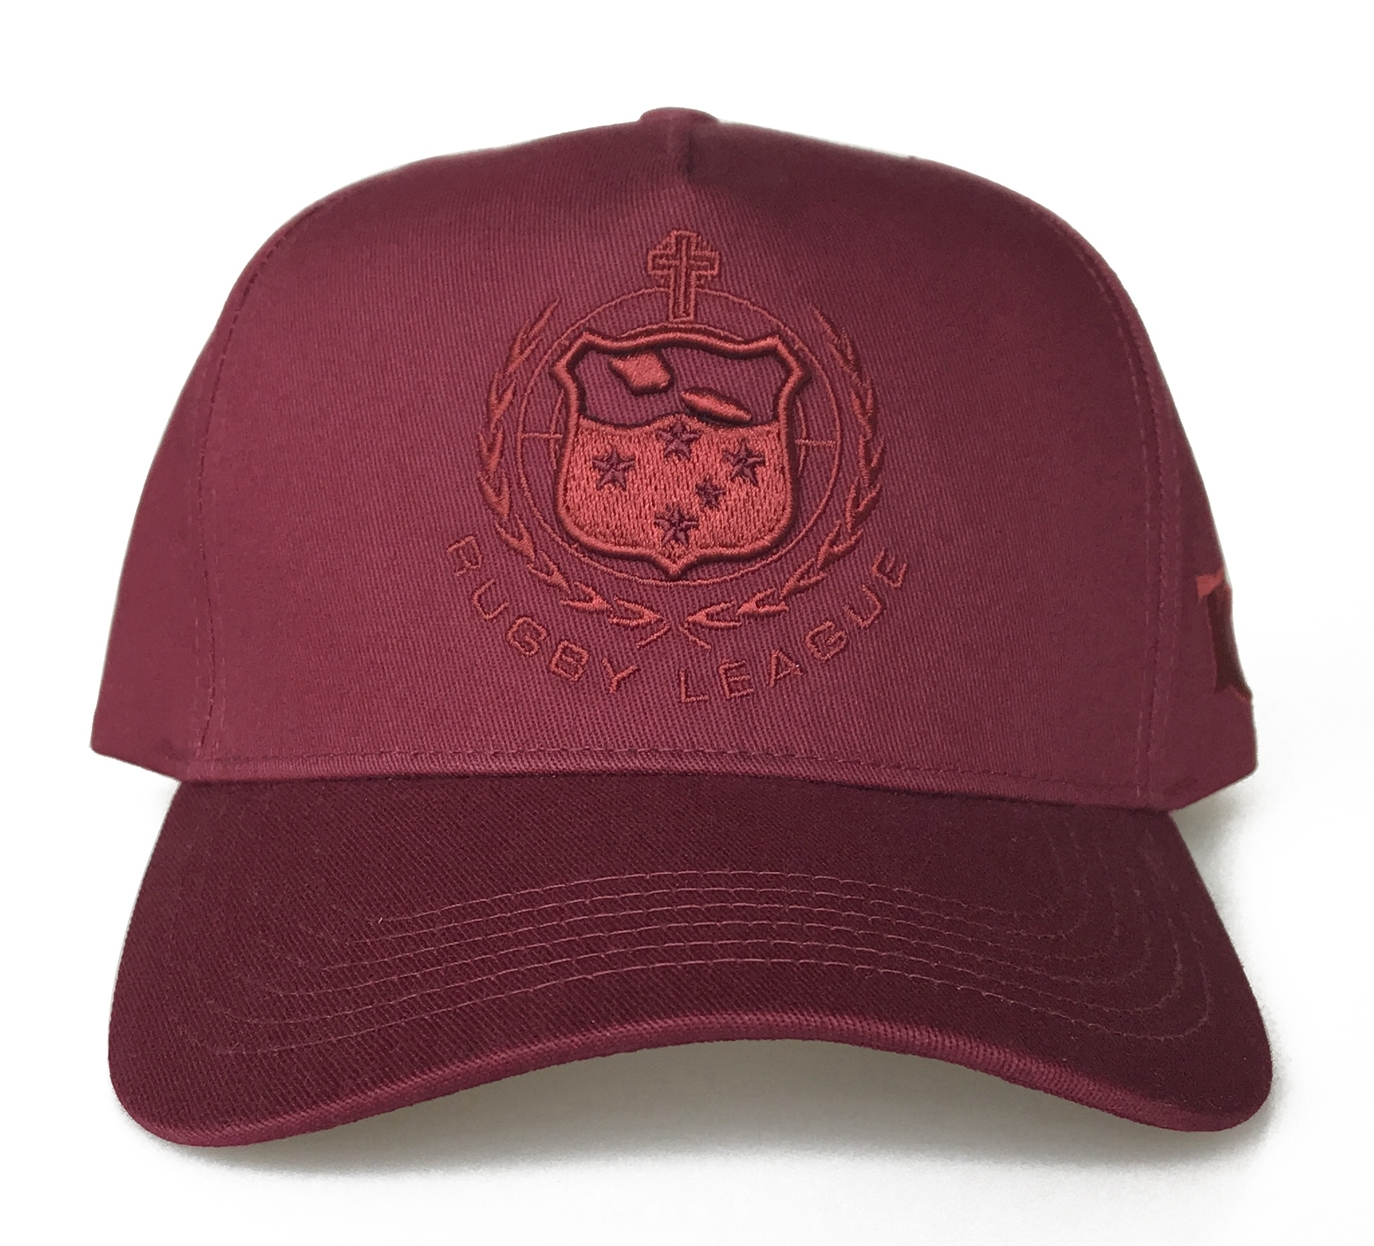 Custom 5 panel A Frame Maroon Baseball Cap Hat